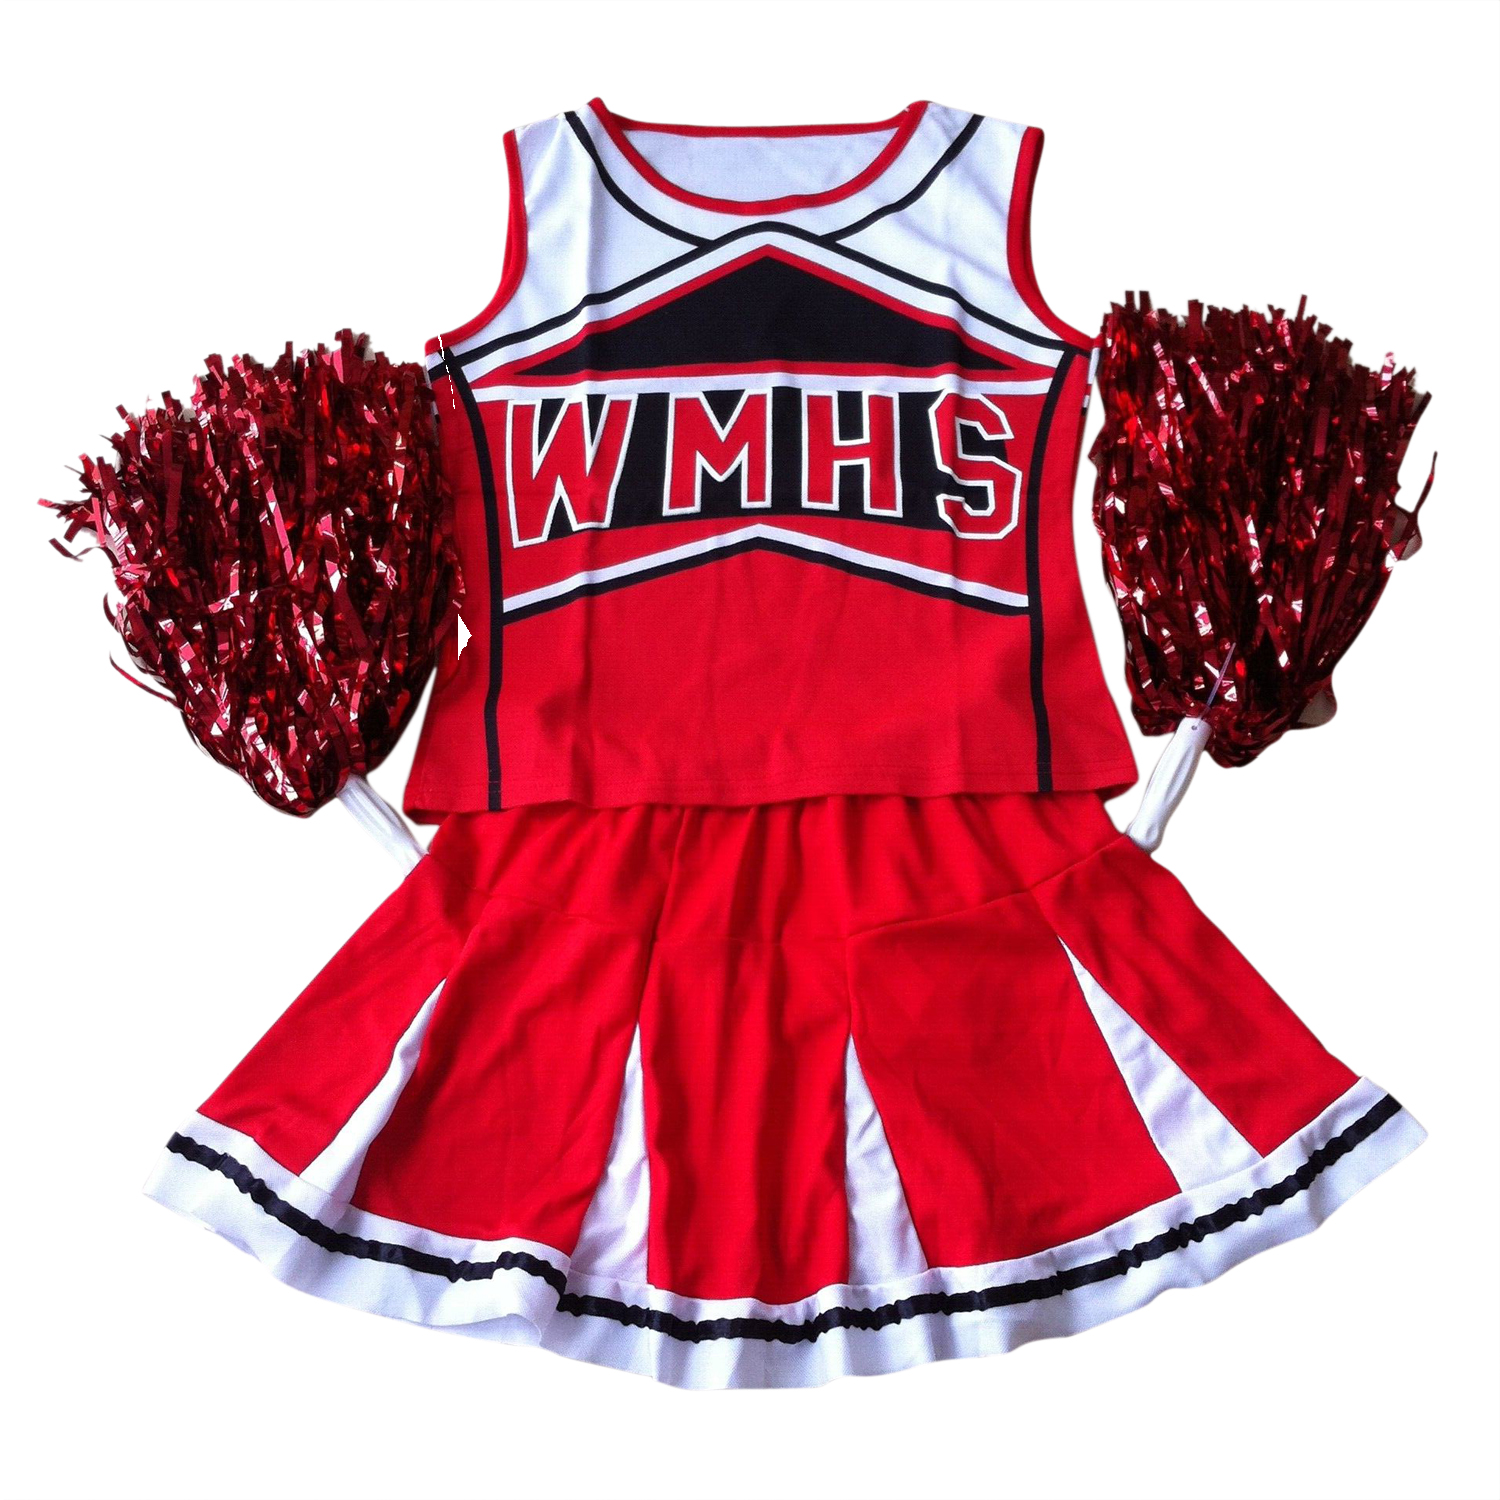 SODIAL(R)Tank top Petticoat Pom cheerleader cheer leaders L (38-40) 2 piece suit new red costume